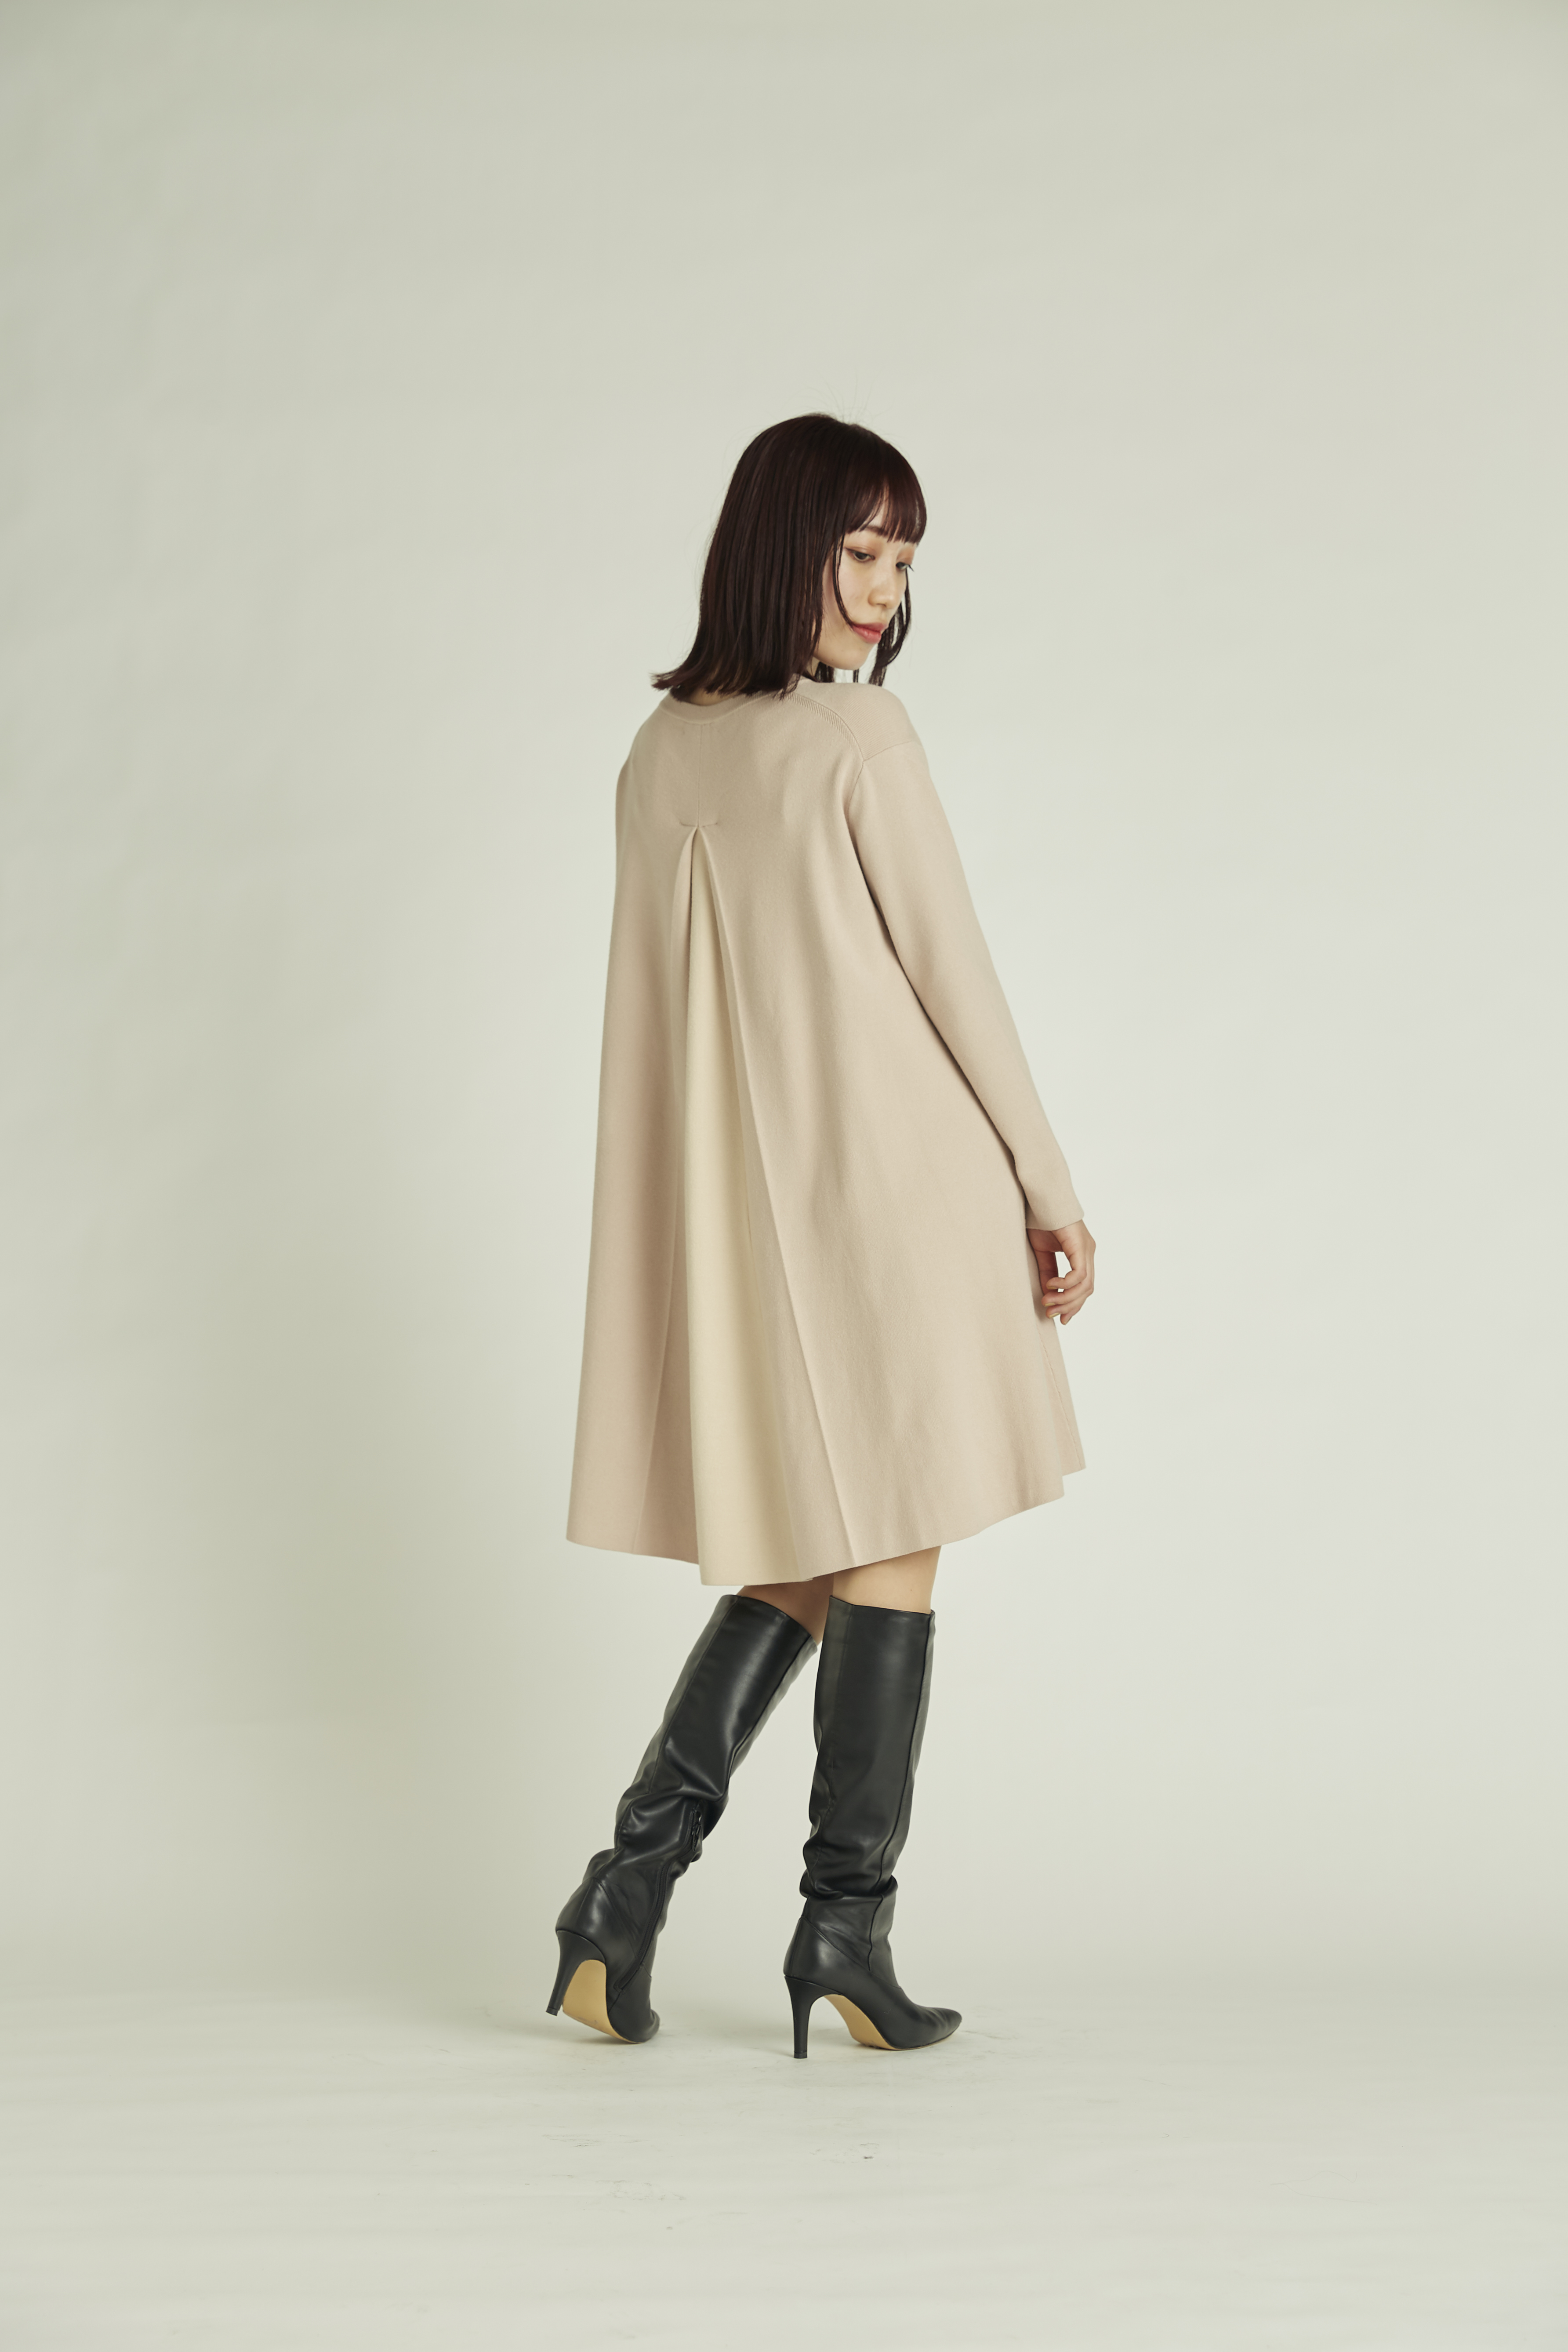 【NEW Year Special Knit Dress】バイカラーAラインニットワンピース(PBEG-36)